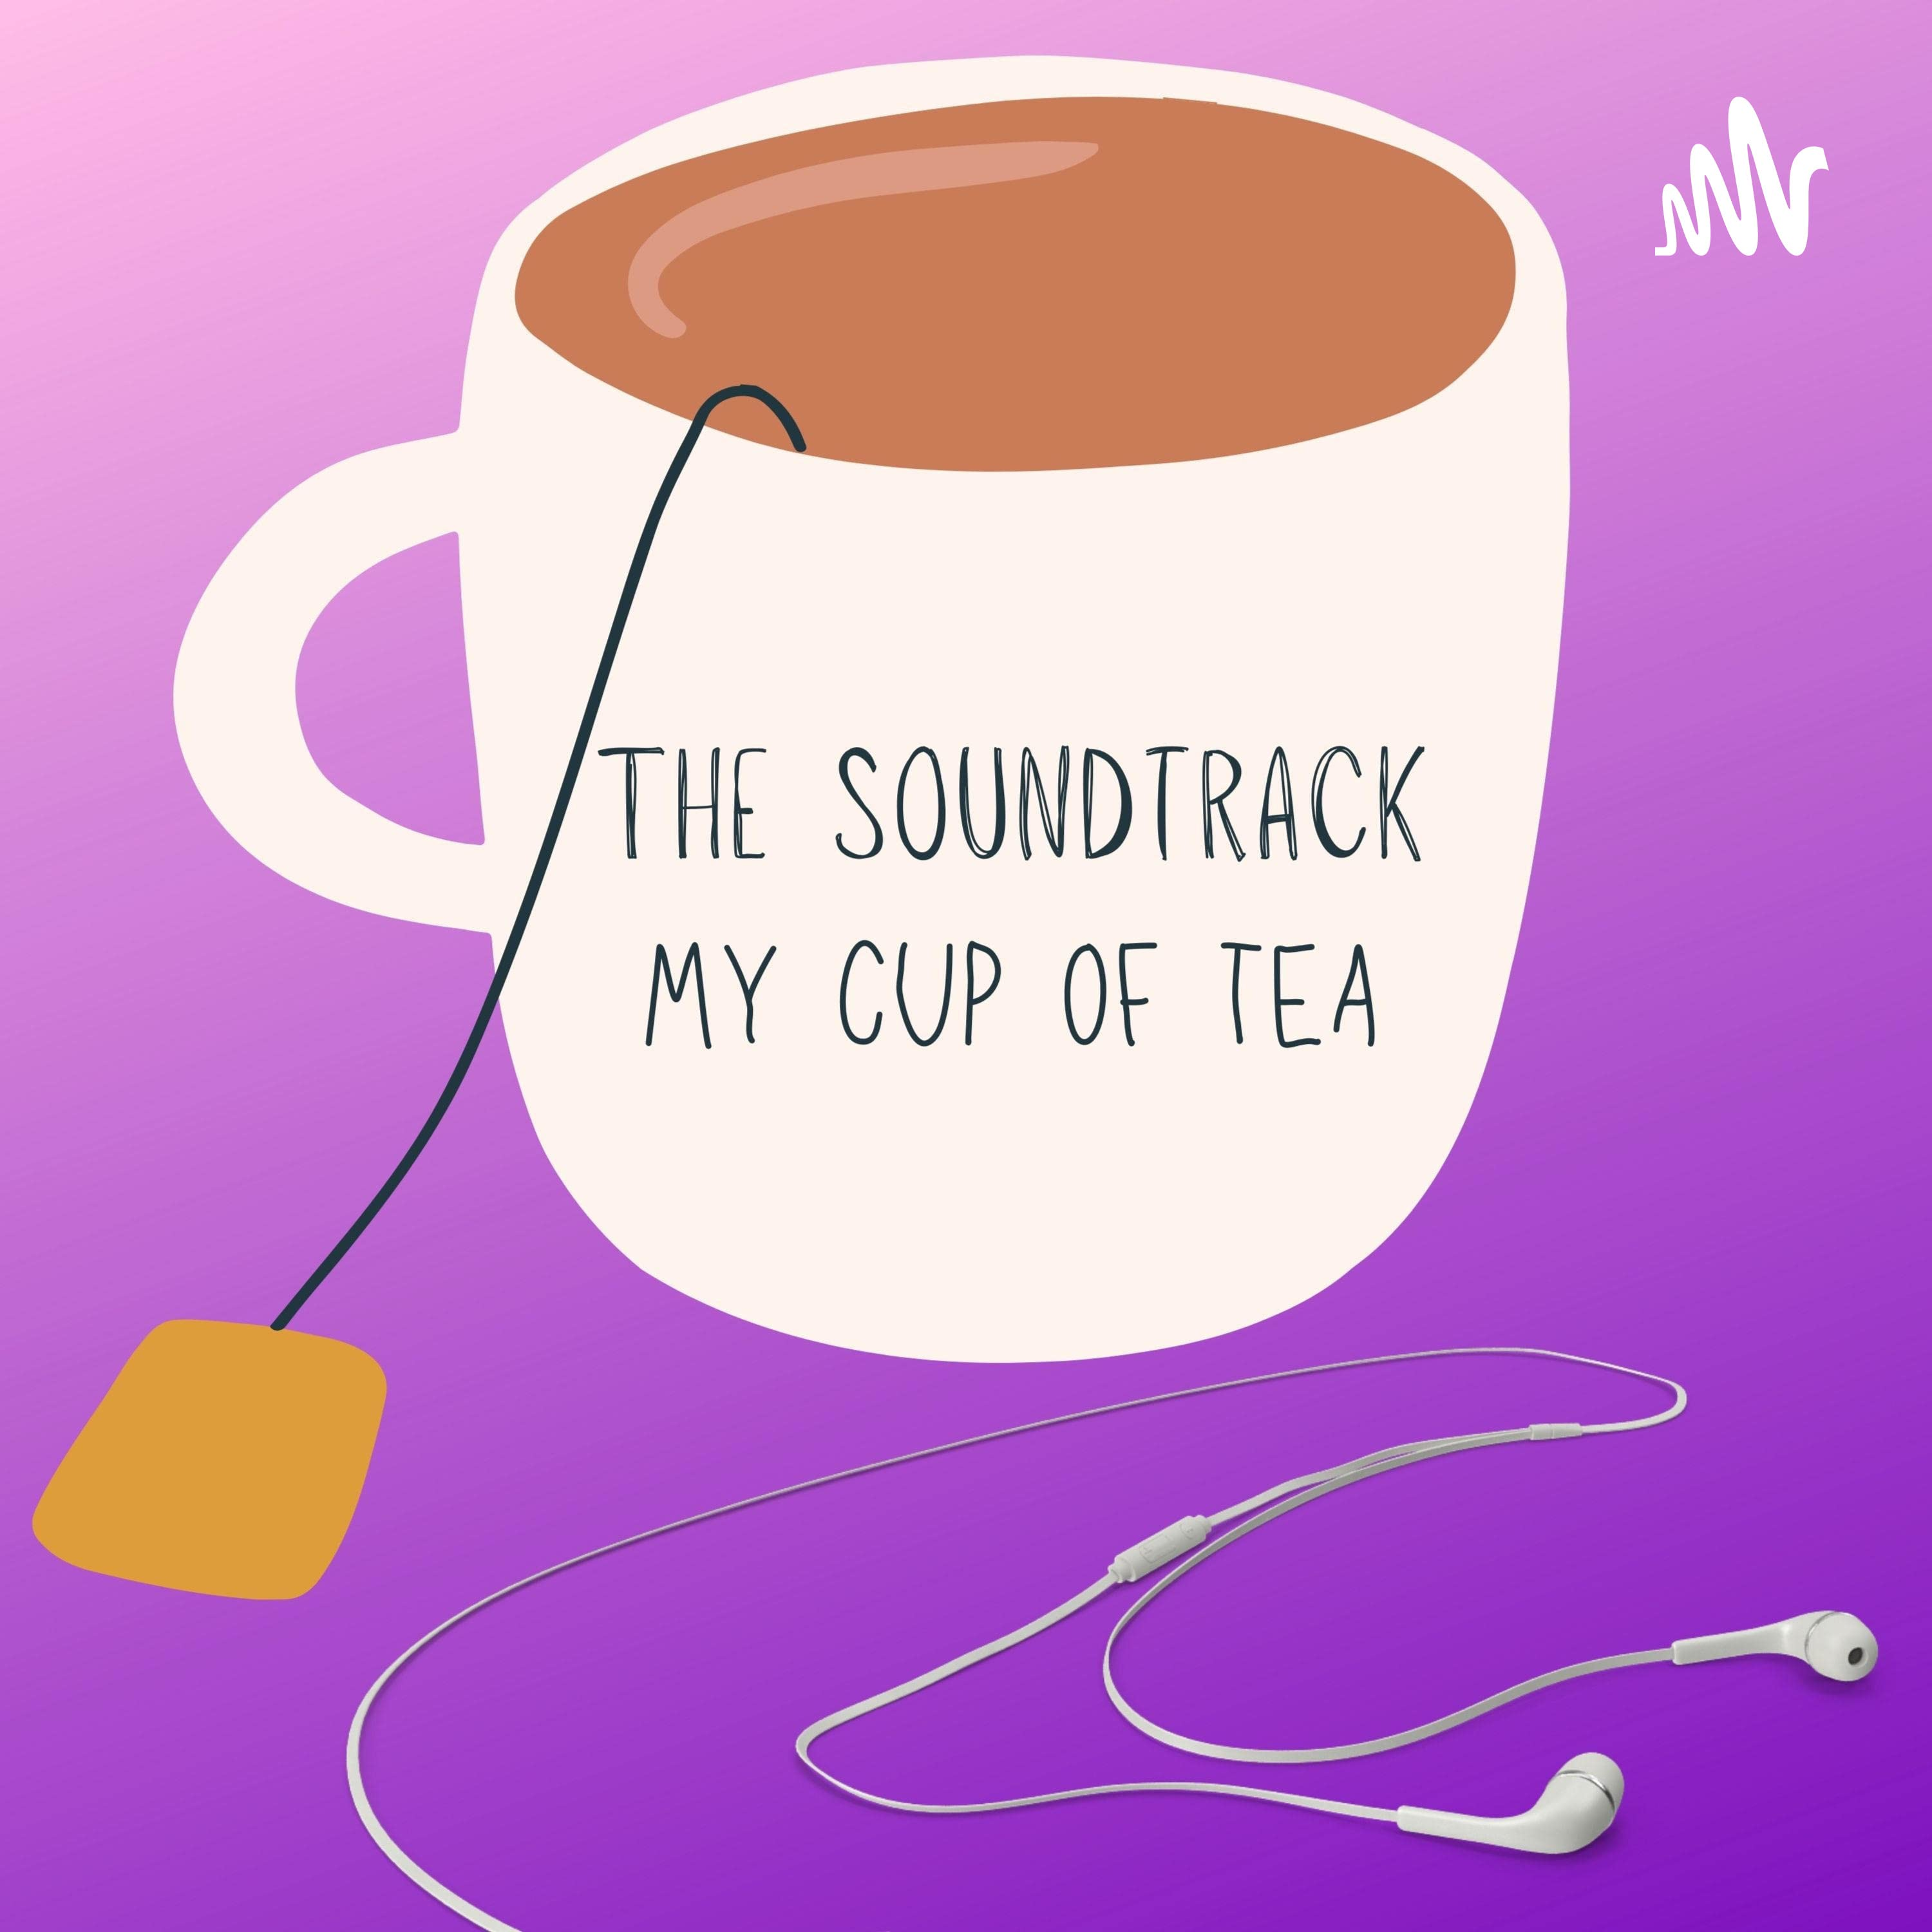 THE SOUNDTRACK // MY CUP OF TEA